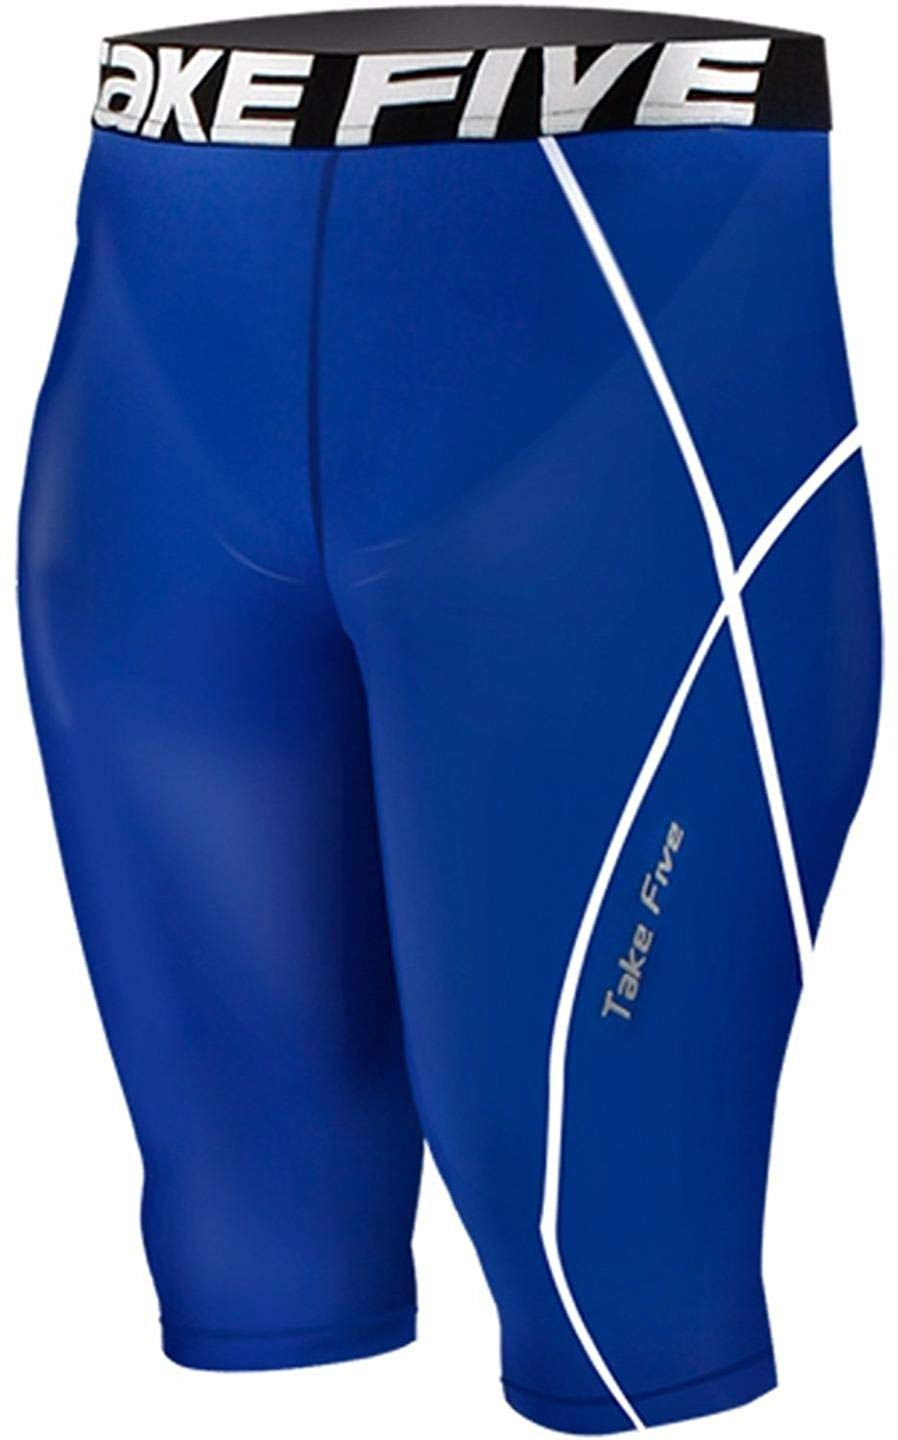 b085d46a2c Get Quotations · JustOneStyle New 082 Skin Tights Compression Base Layer  Blue Running Shorts Pants Mens